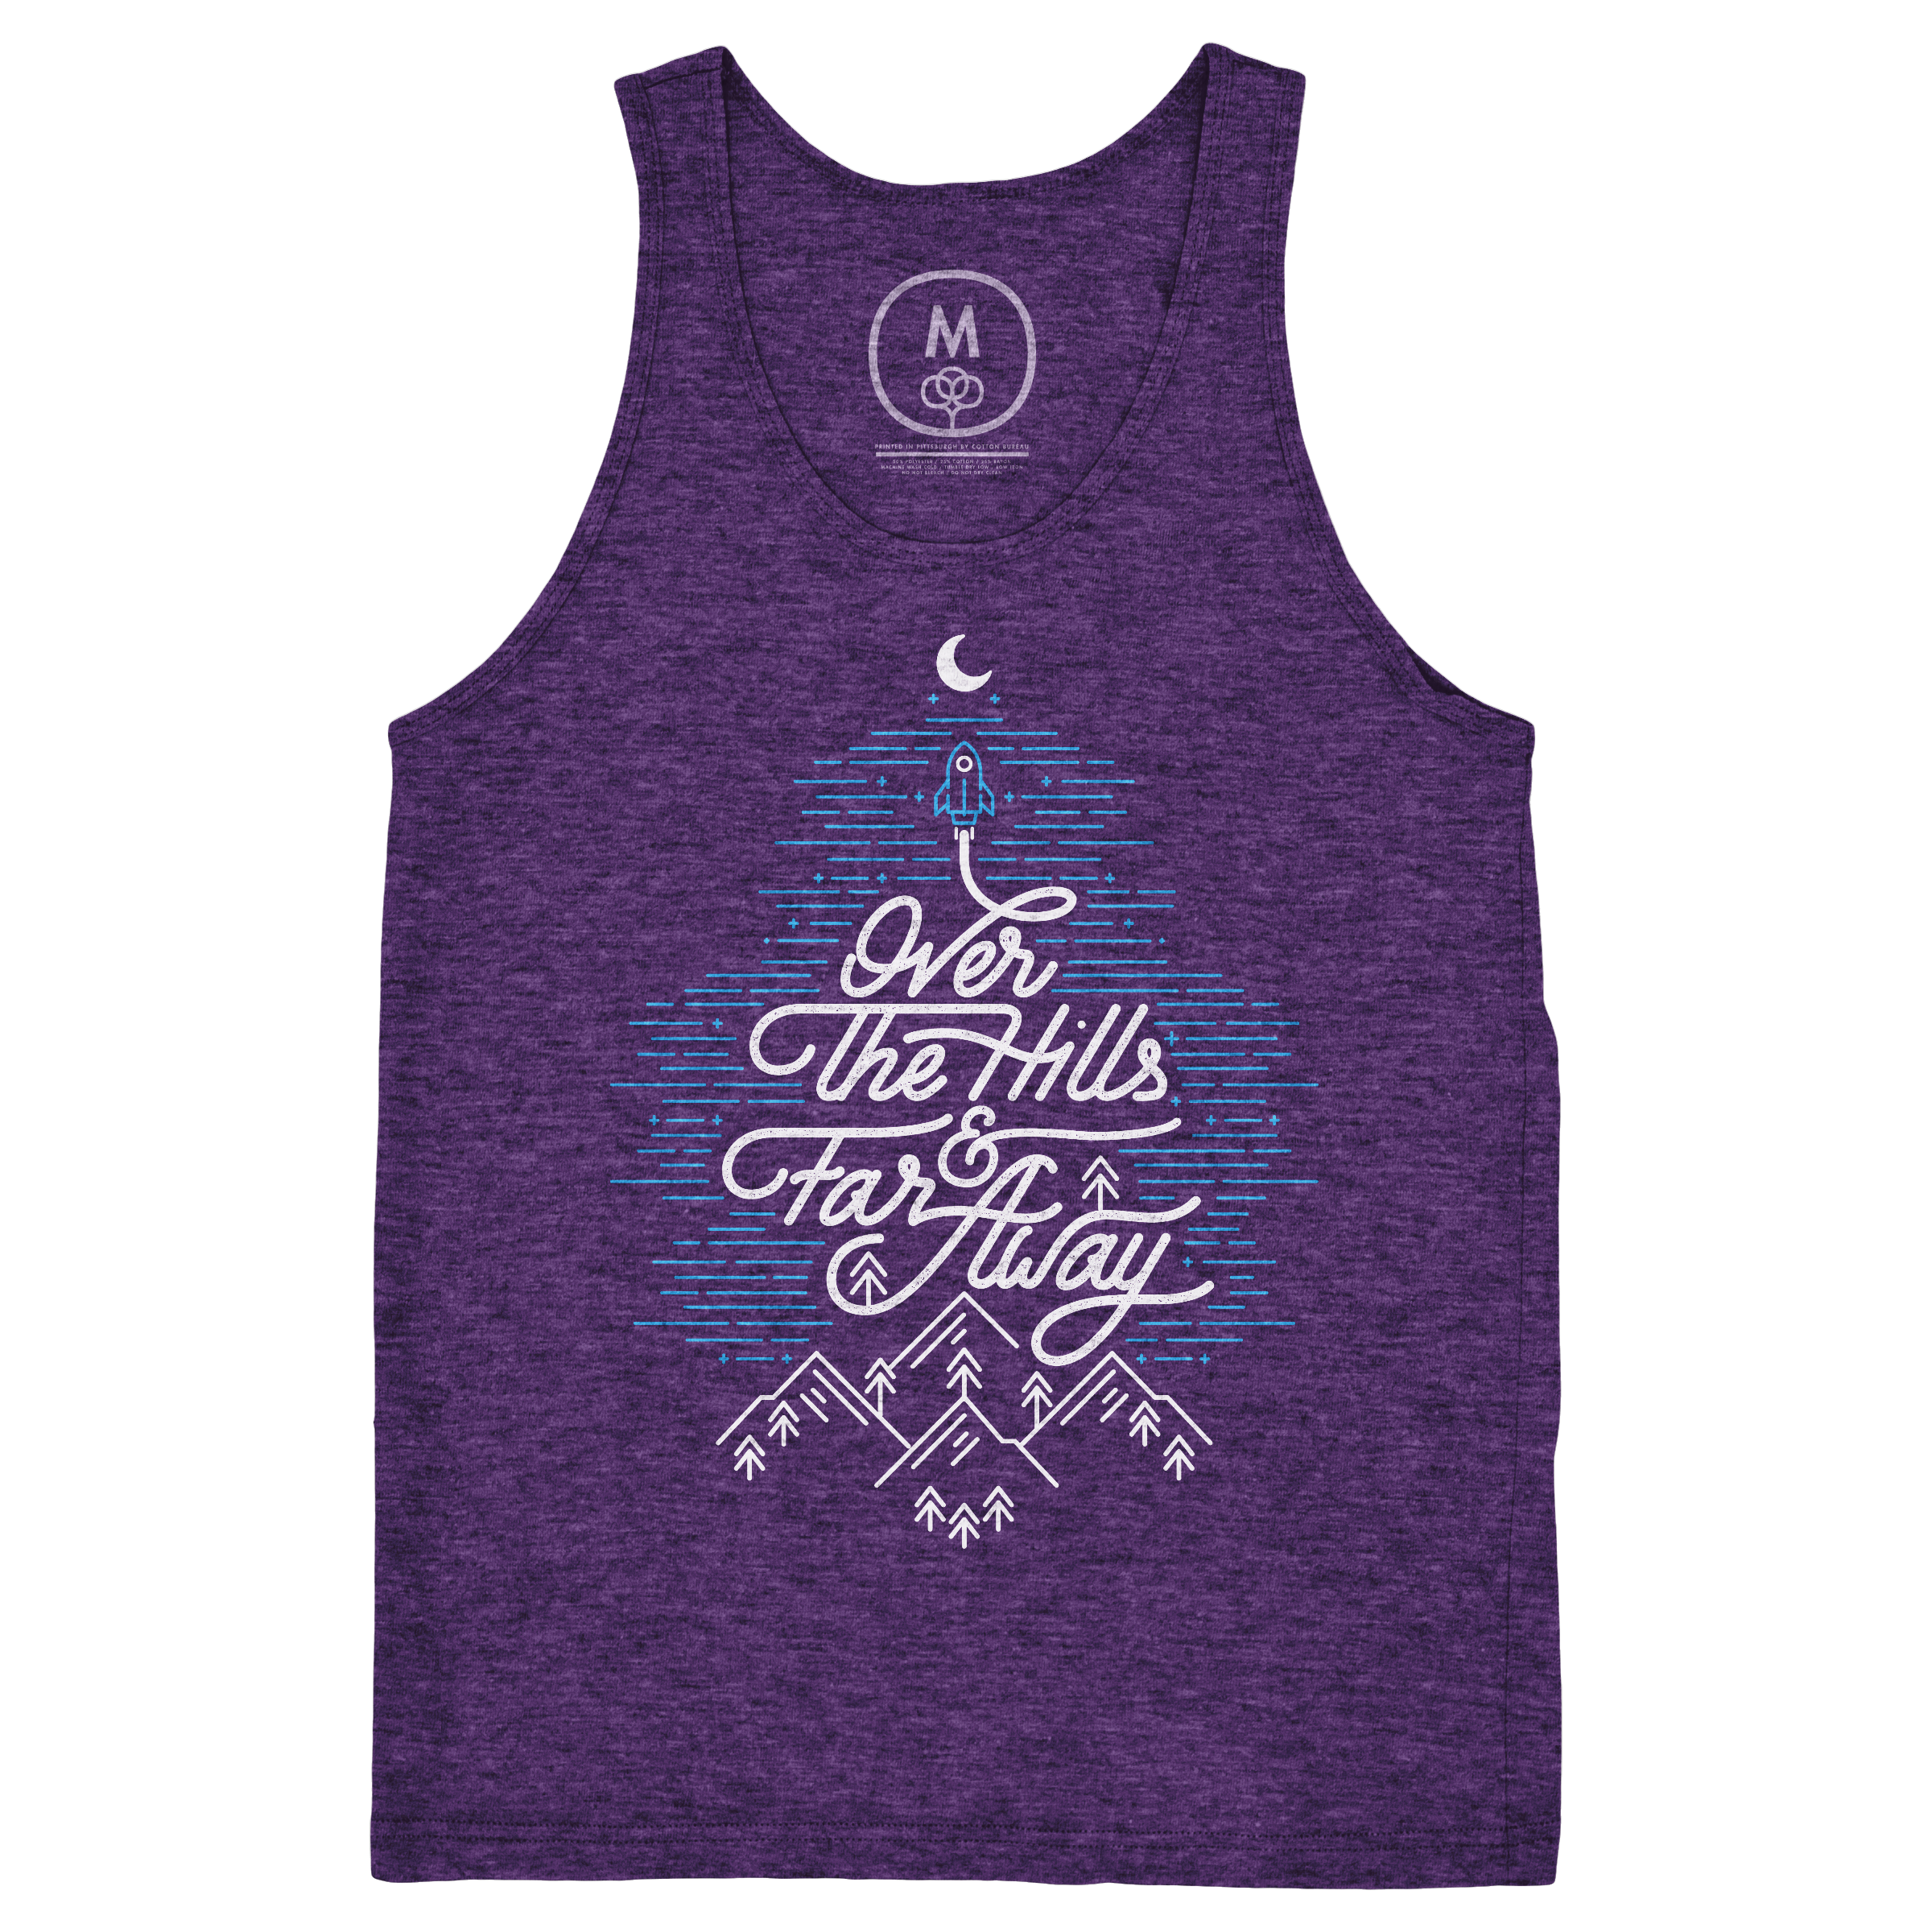 Over The Hills And Far Away Tank Top